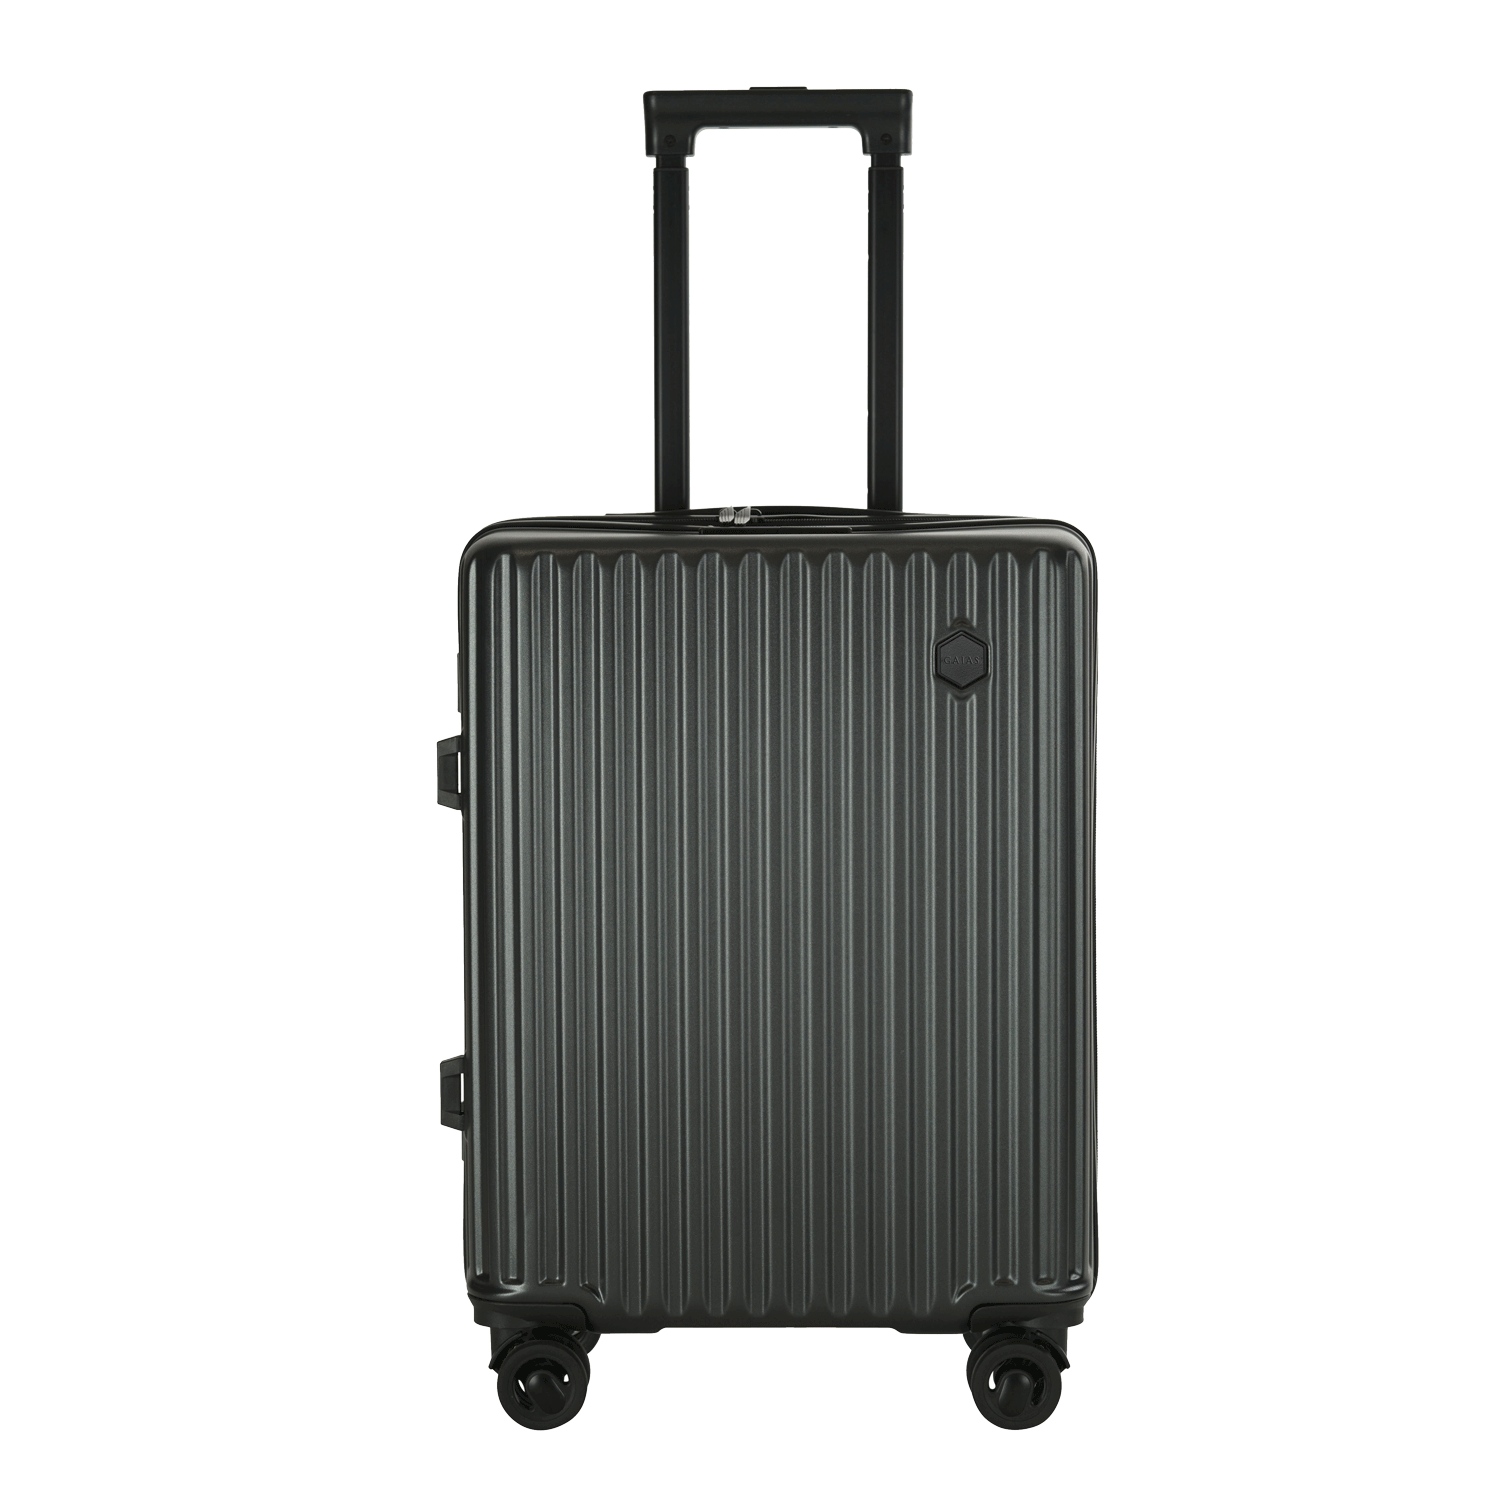 alpha luggage with fingerprint scanner premium product #35126